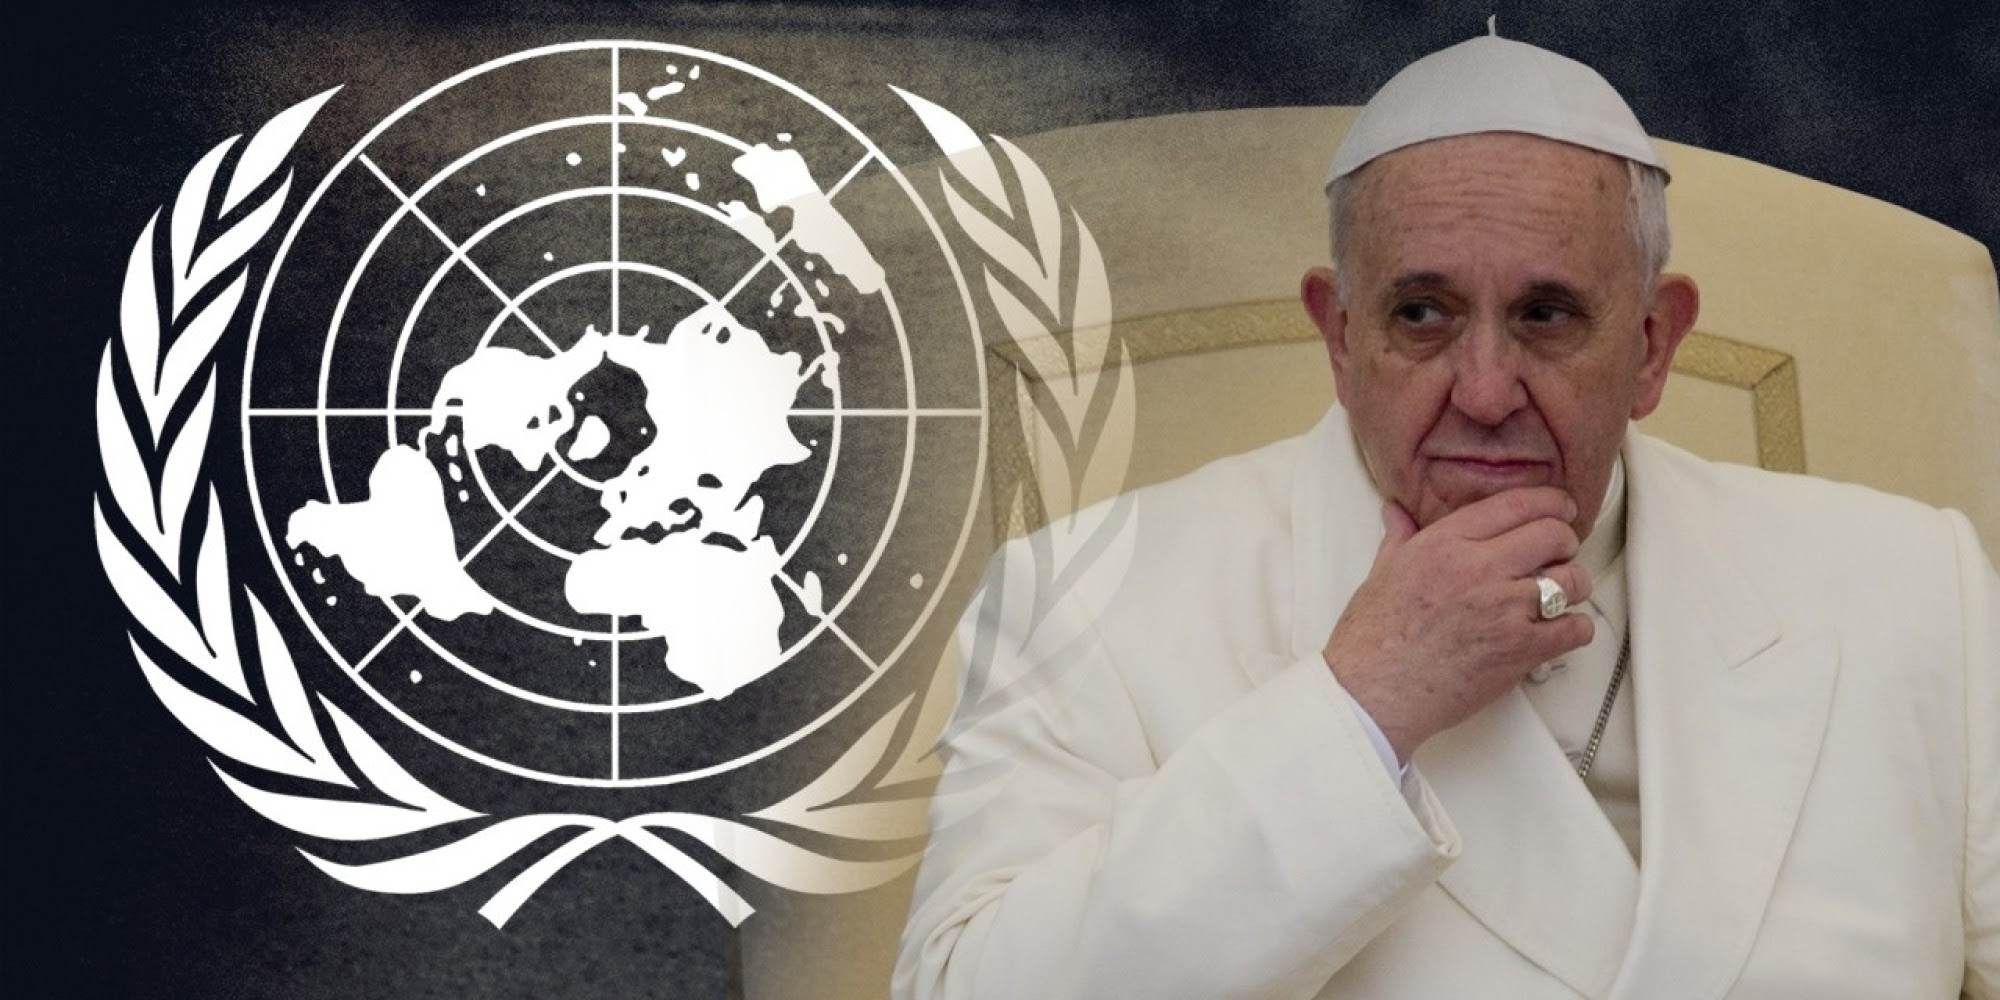 What will the Pope tell the world when he addresses the United Nations next month?